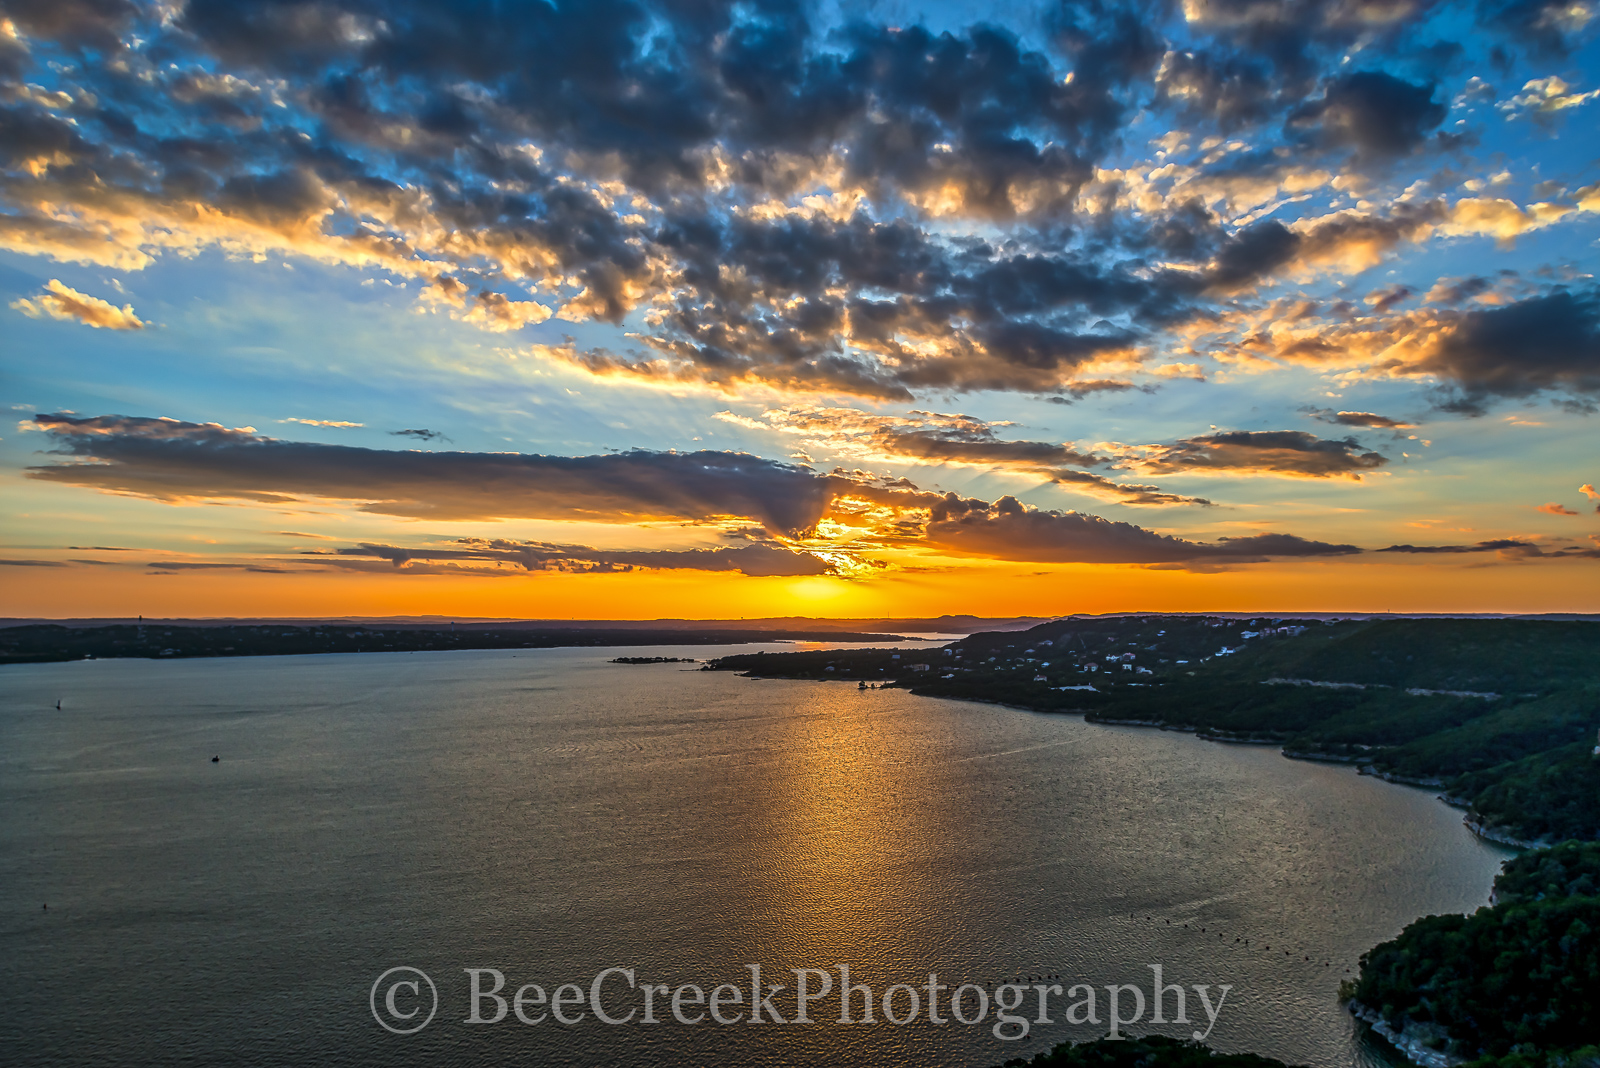 Austin, Lake Travis, sunset, colorful, clouds, images of Texas, lake, landscapes, orange, photos of Texas, rural, texas hill country, texas landscape, texas, America, American, recreational, boating,